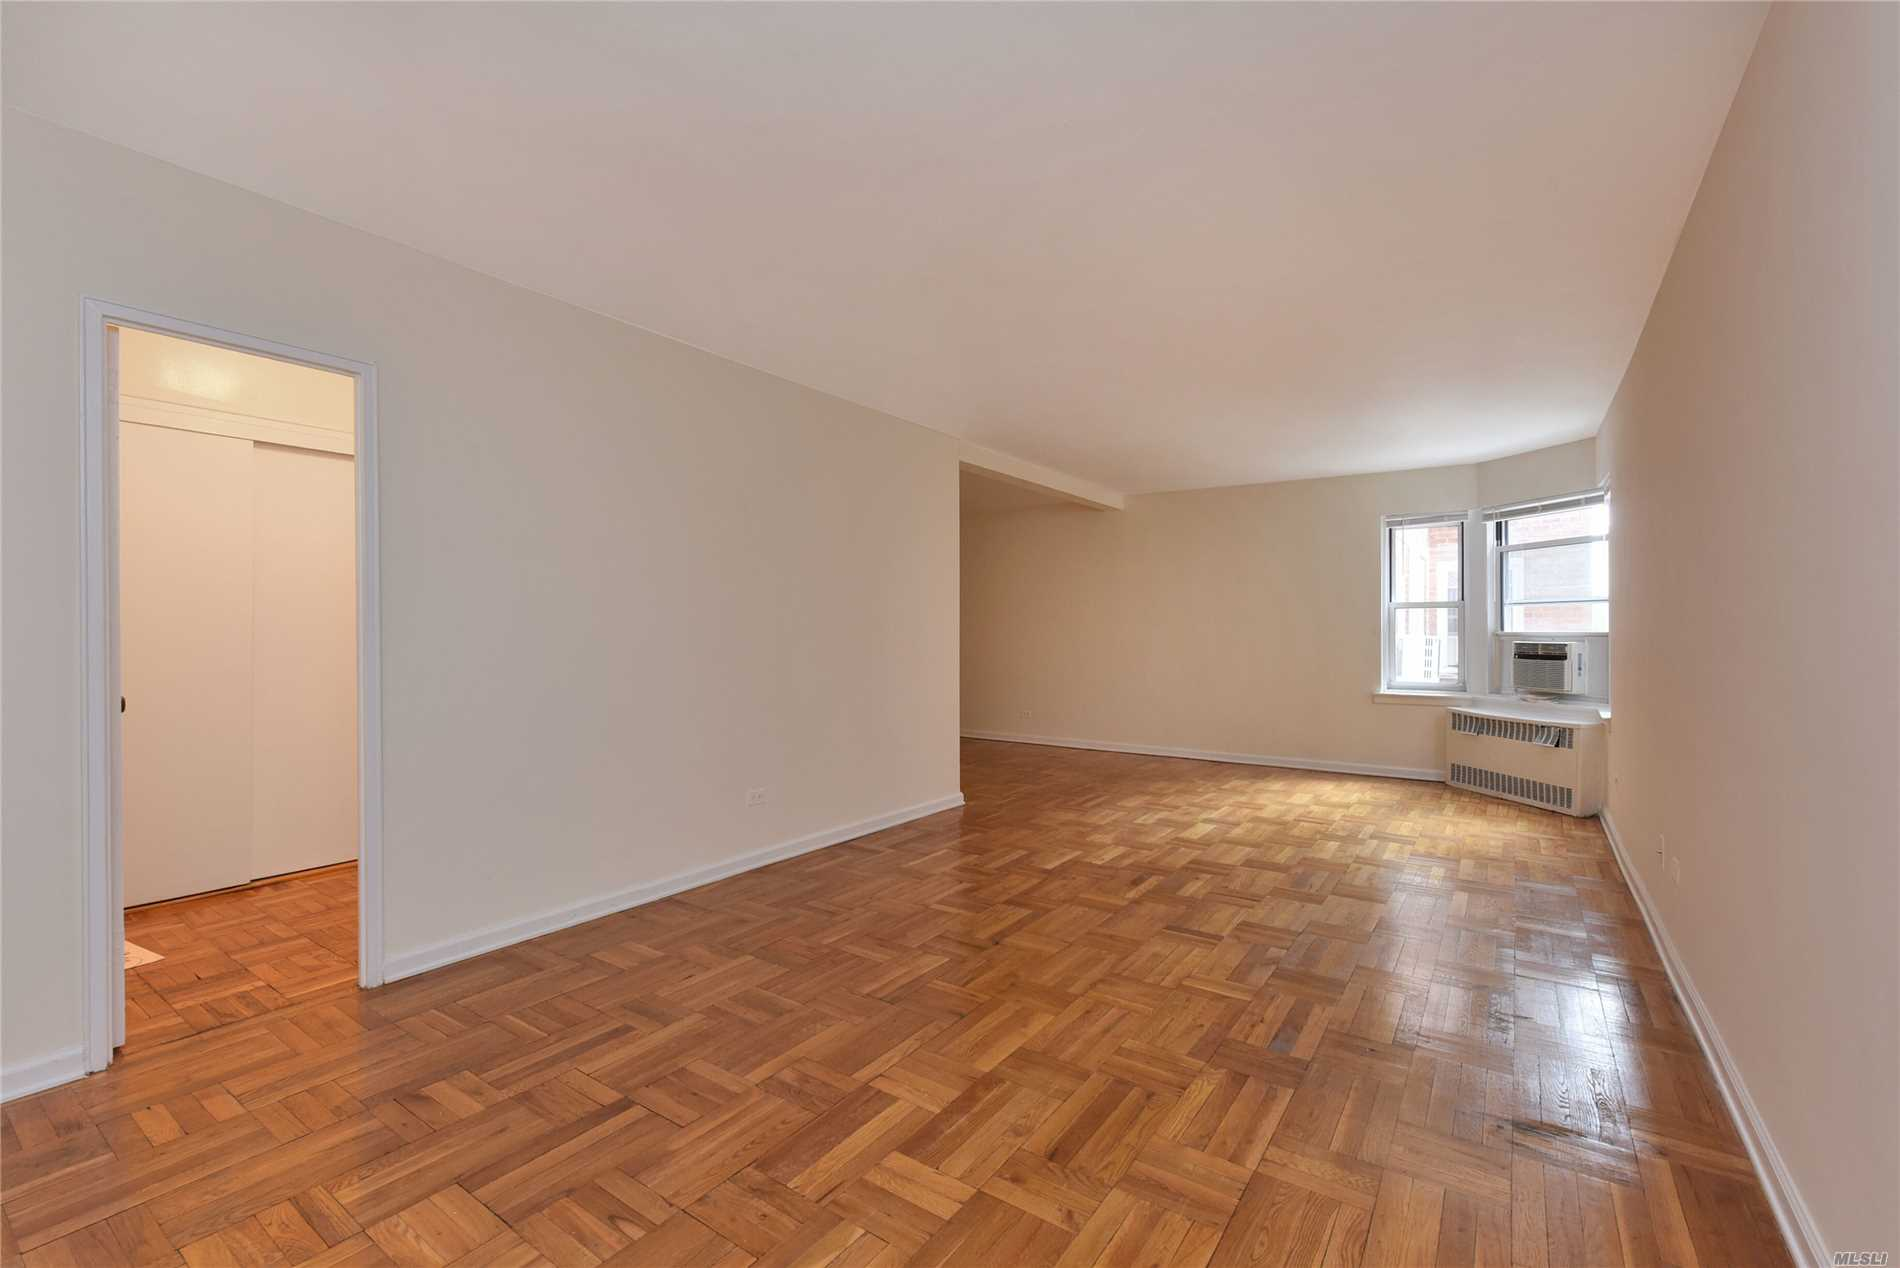 110-20 71st Road 205, Forest Hills, NY 11375